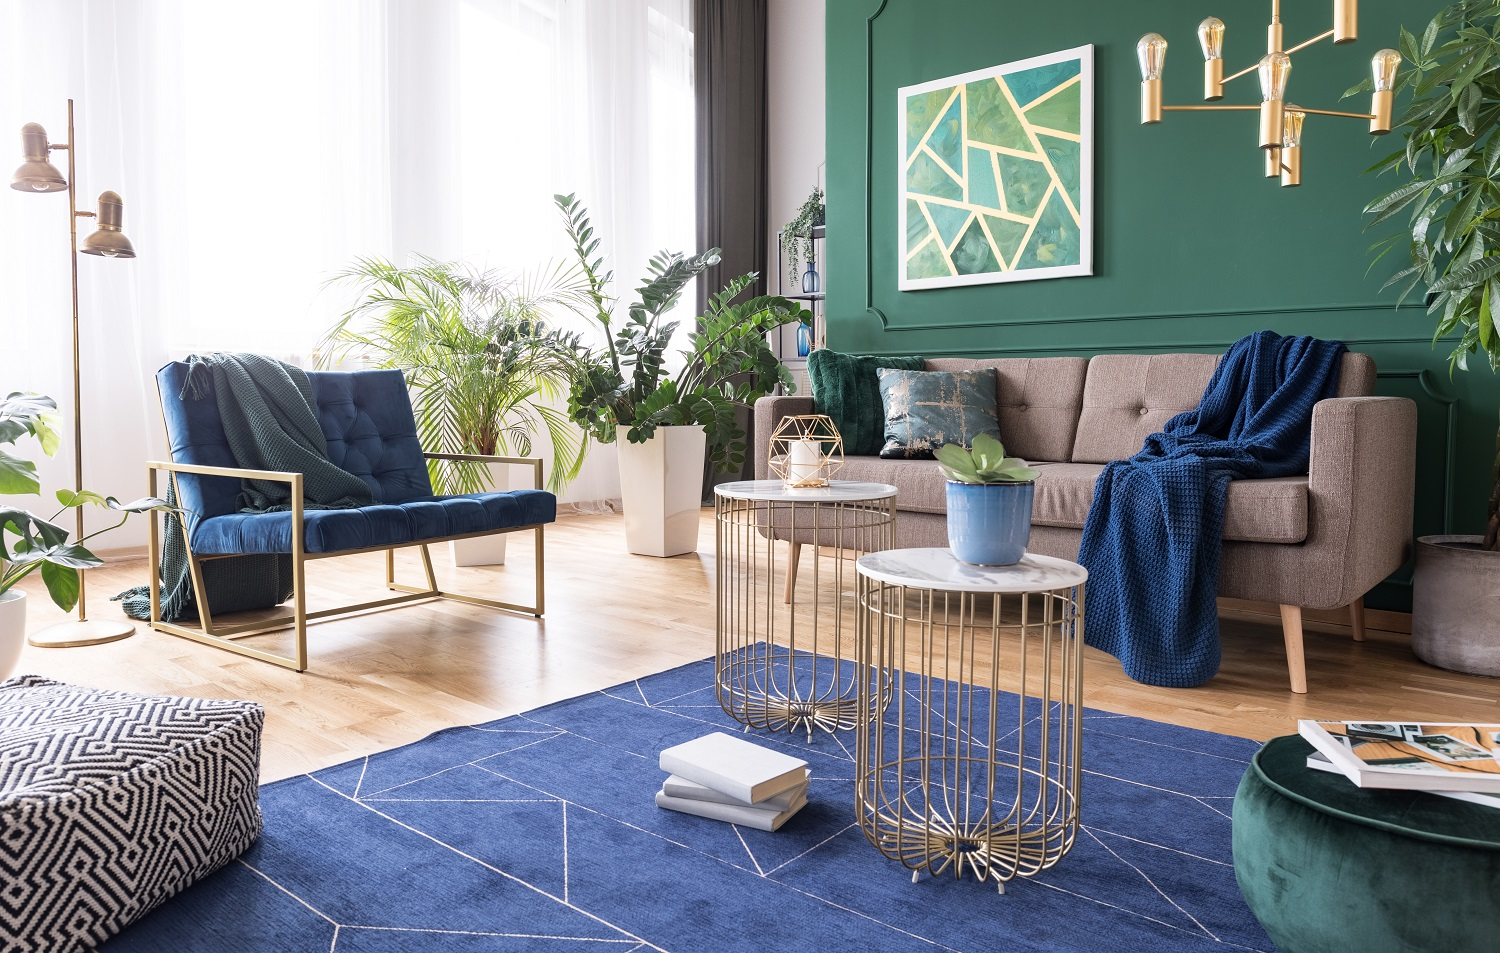 The Most Durable Rugs: Types and Materials